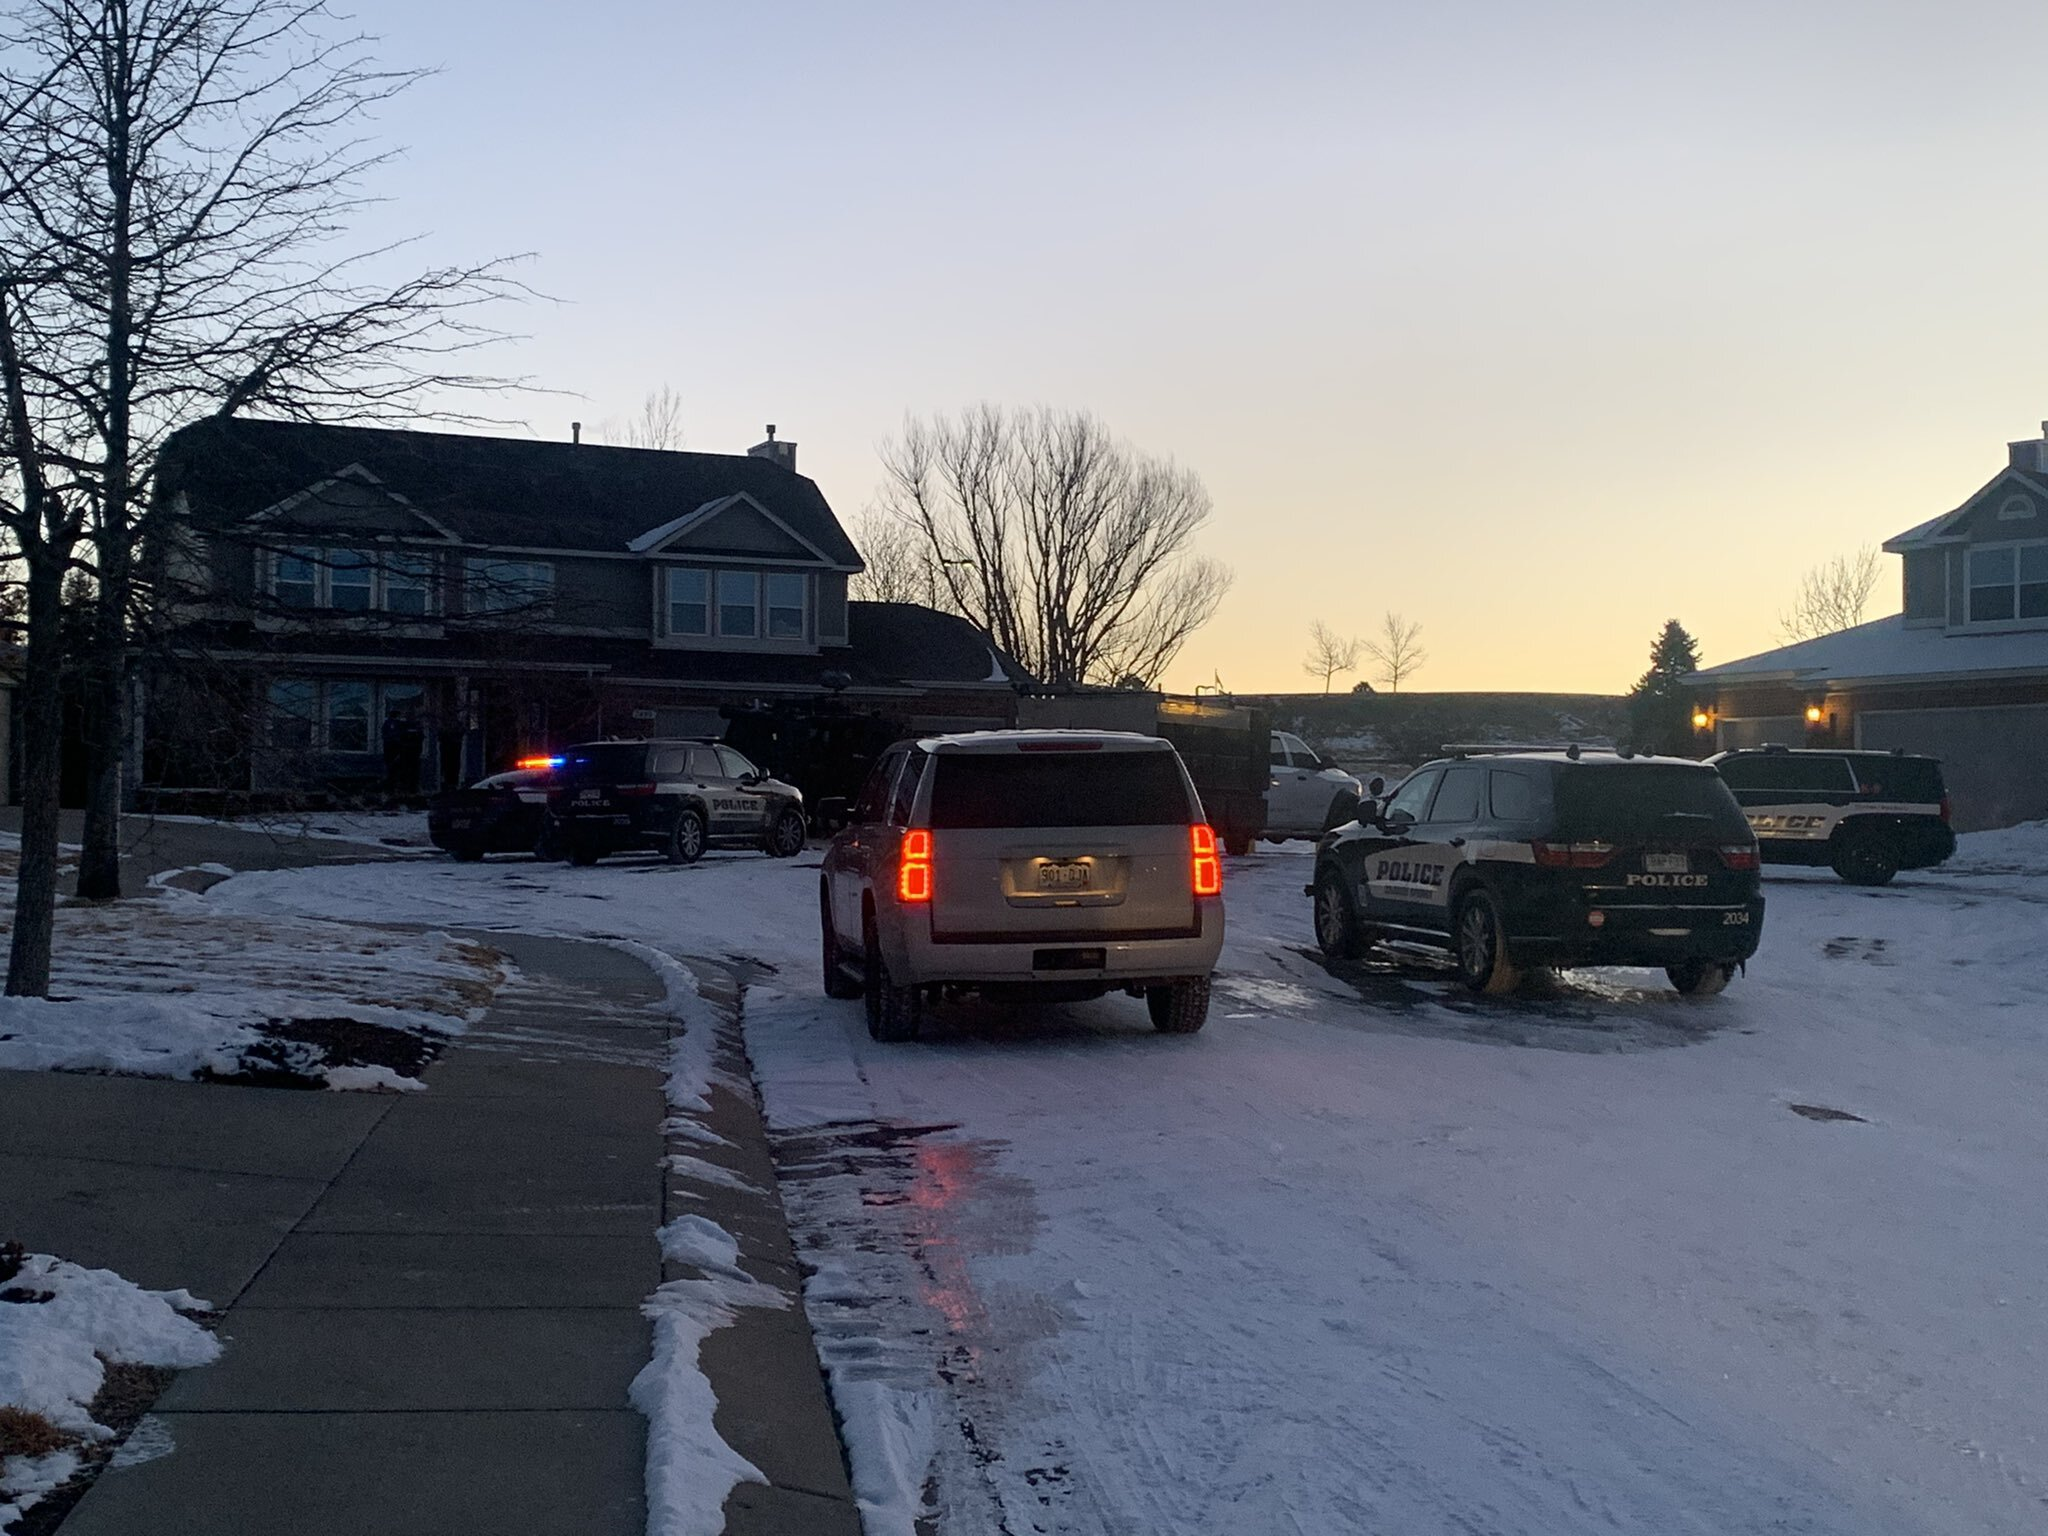 Police activity prompted a shelter-in-place for a Briargate neighborhood early Tuesday.